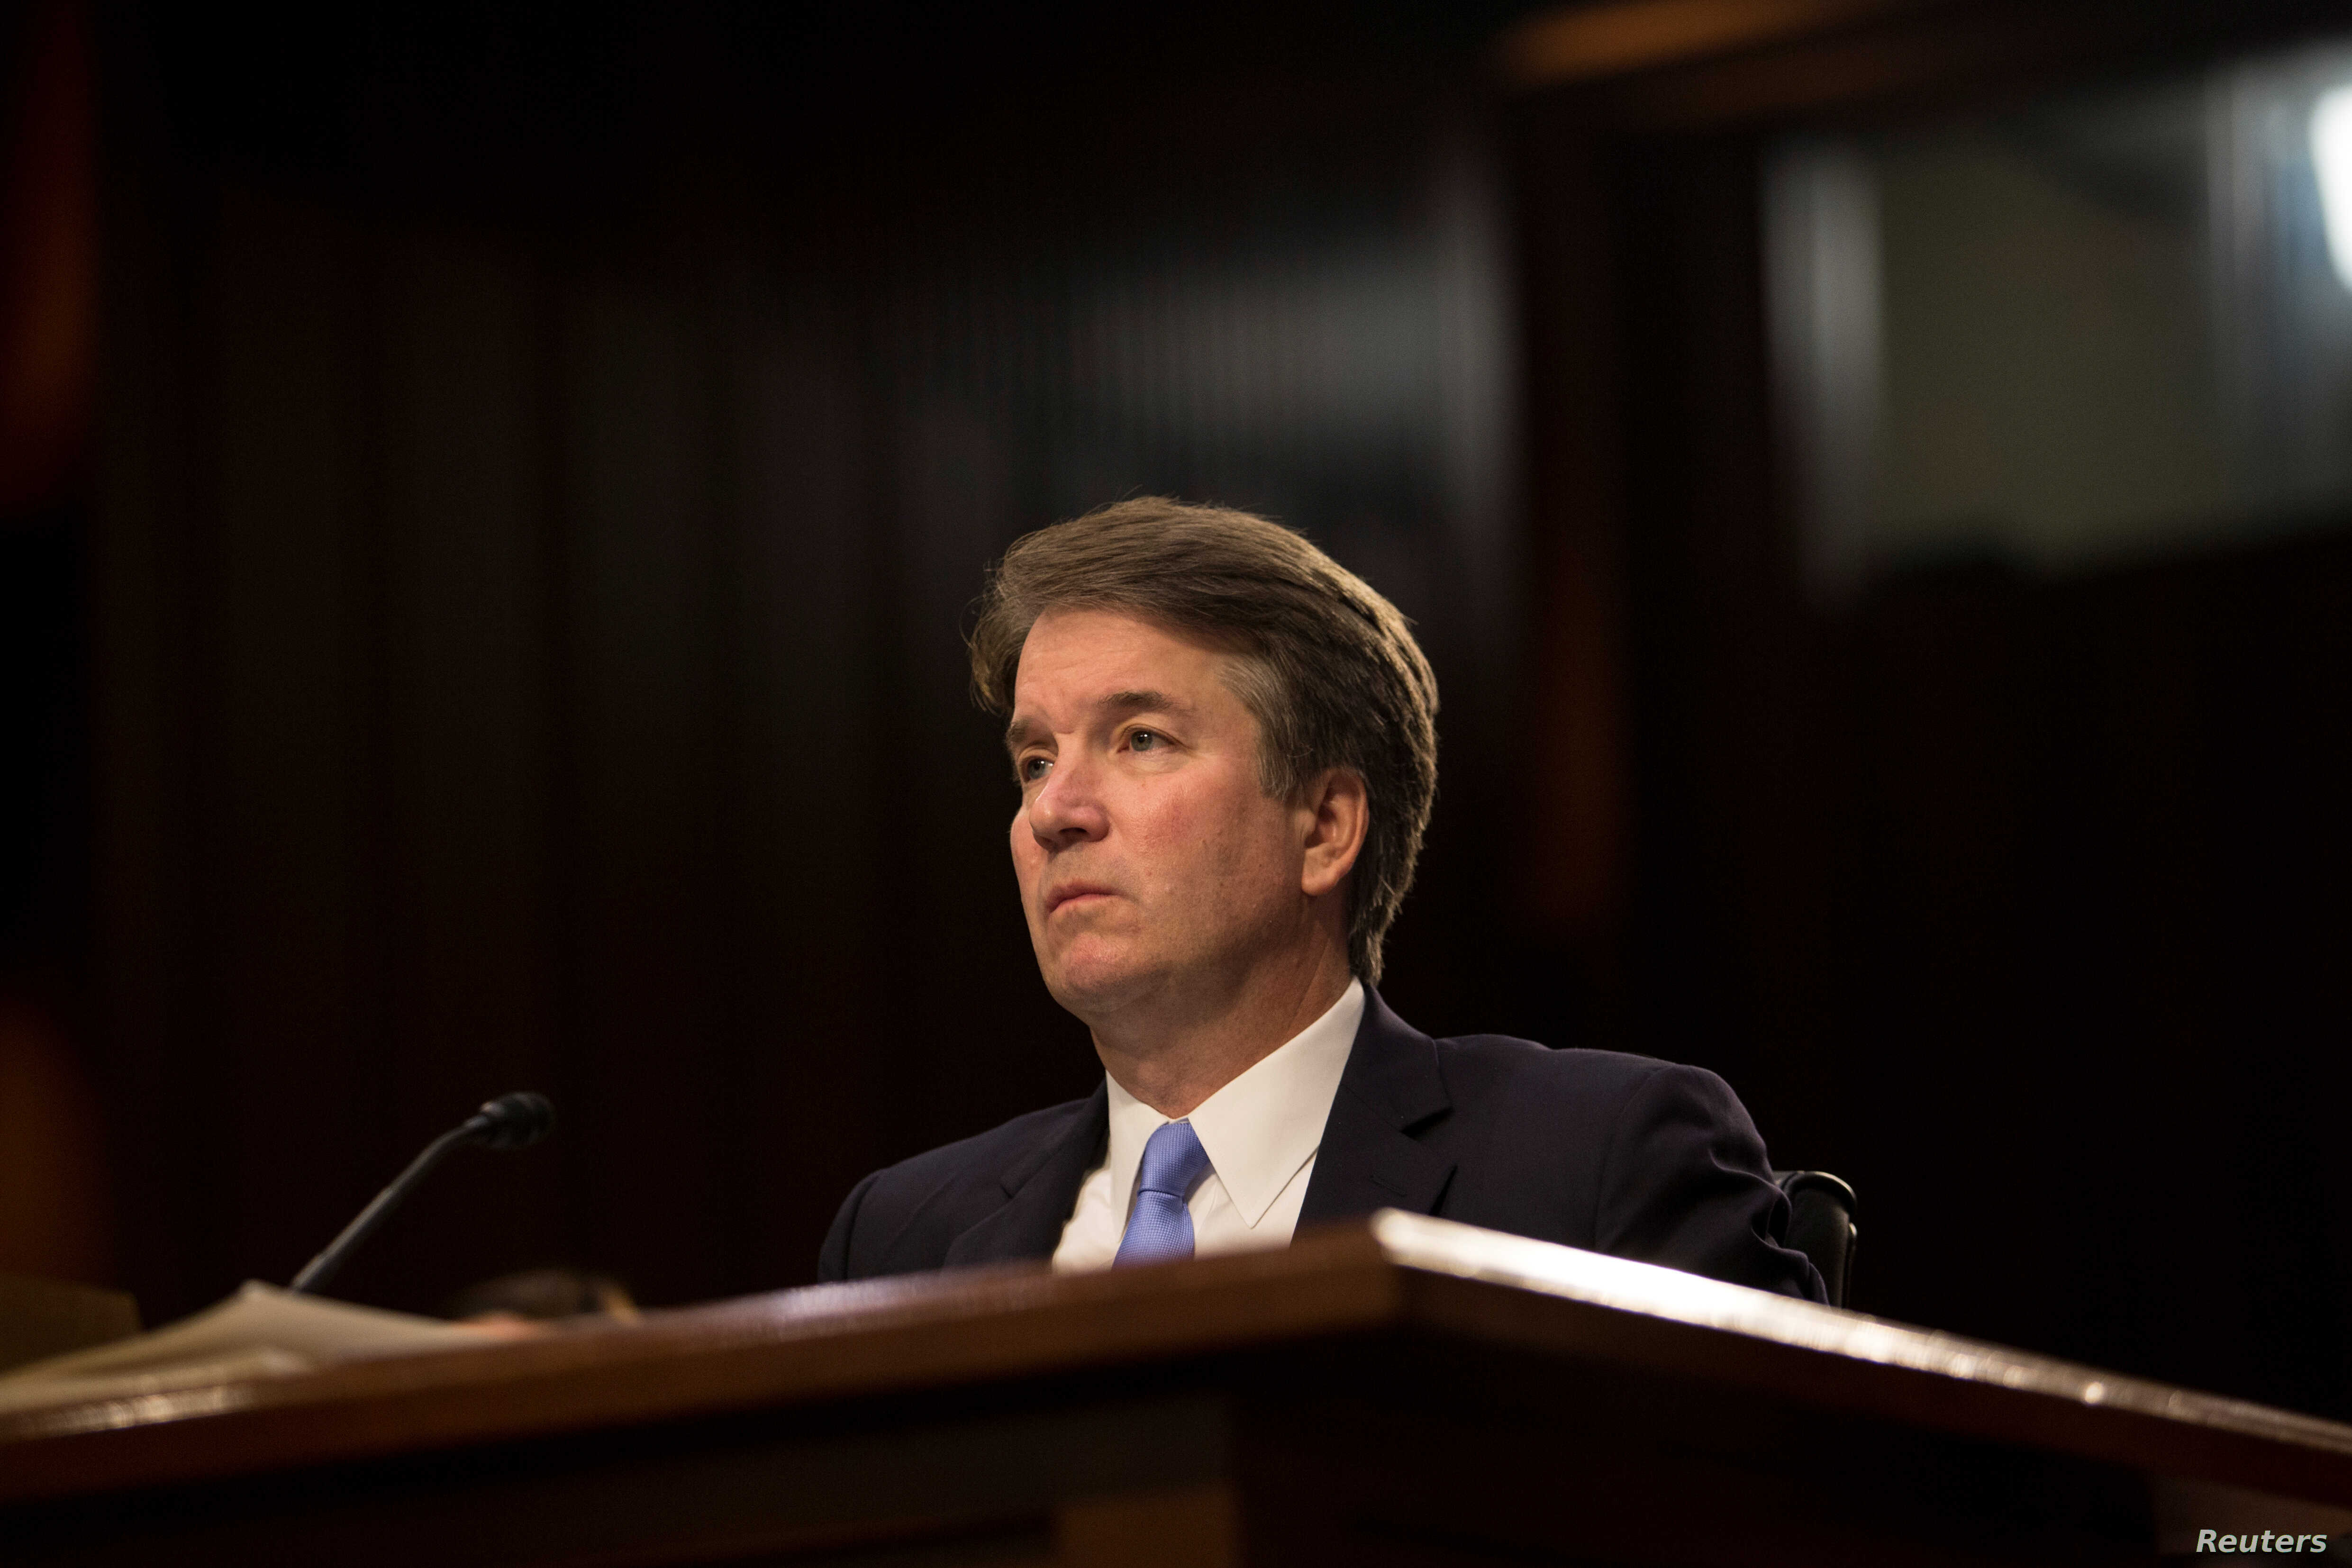 Democratic presidential hopefuls call for Kavanaugh's impeachment